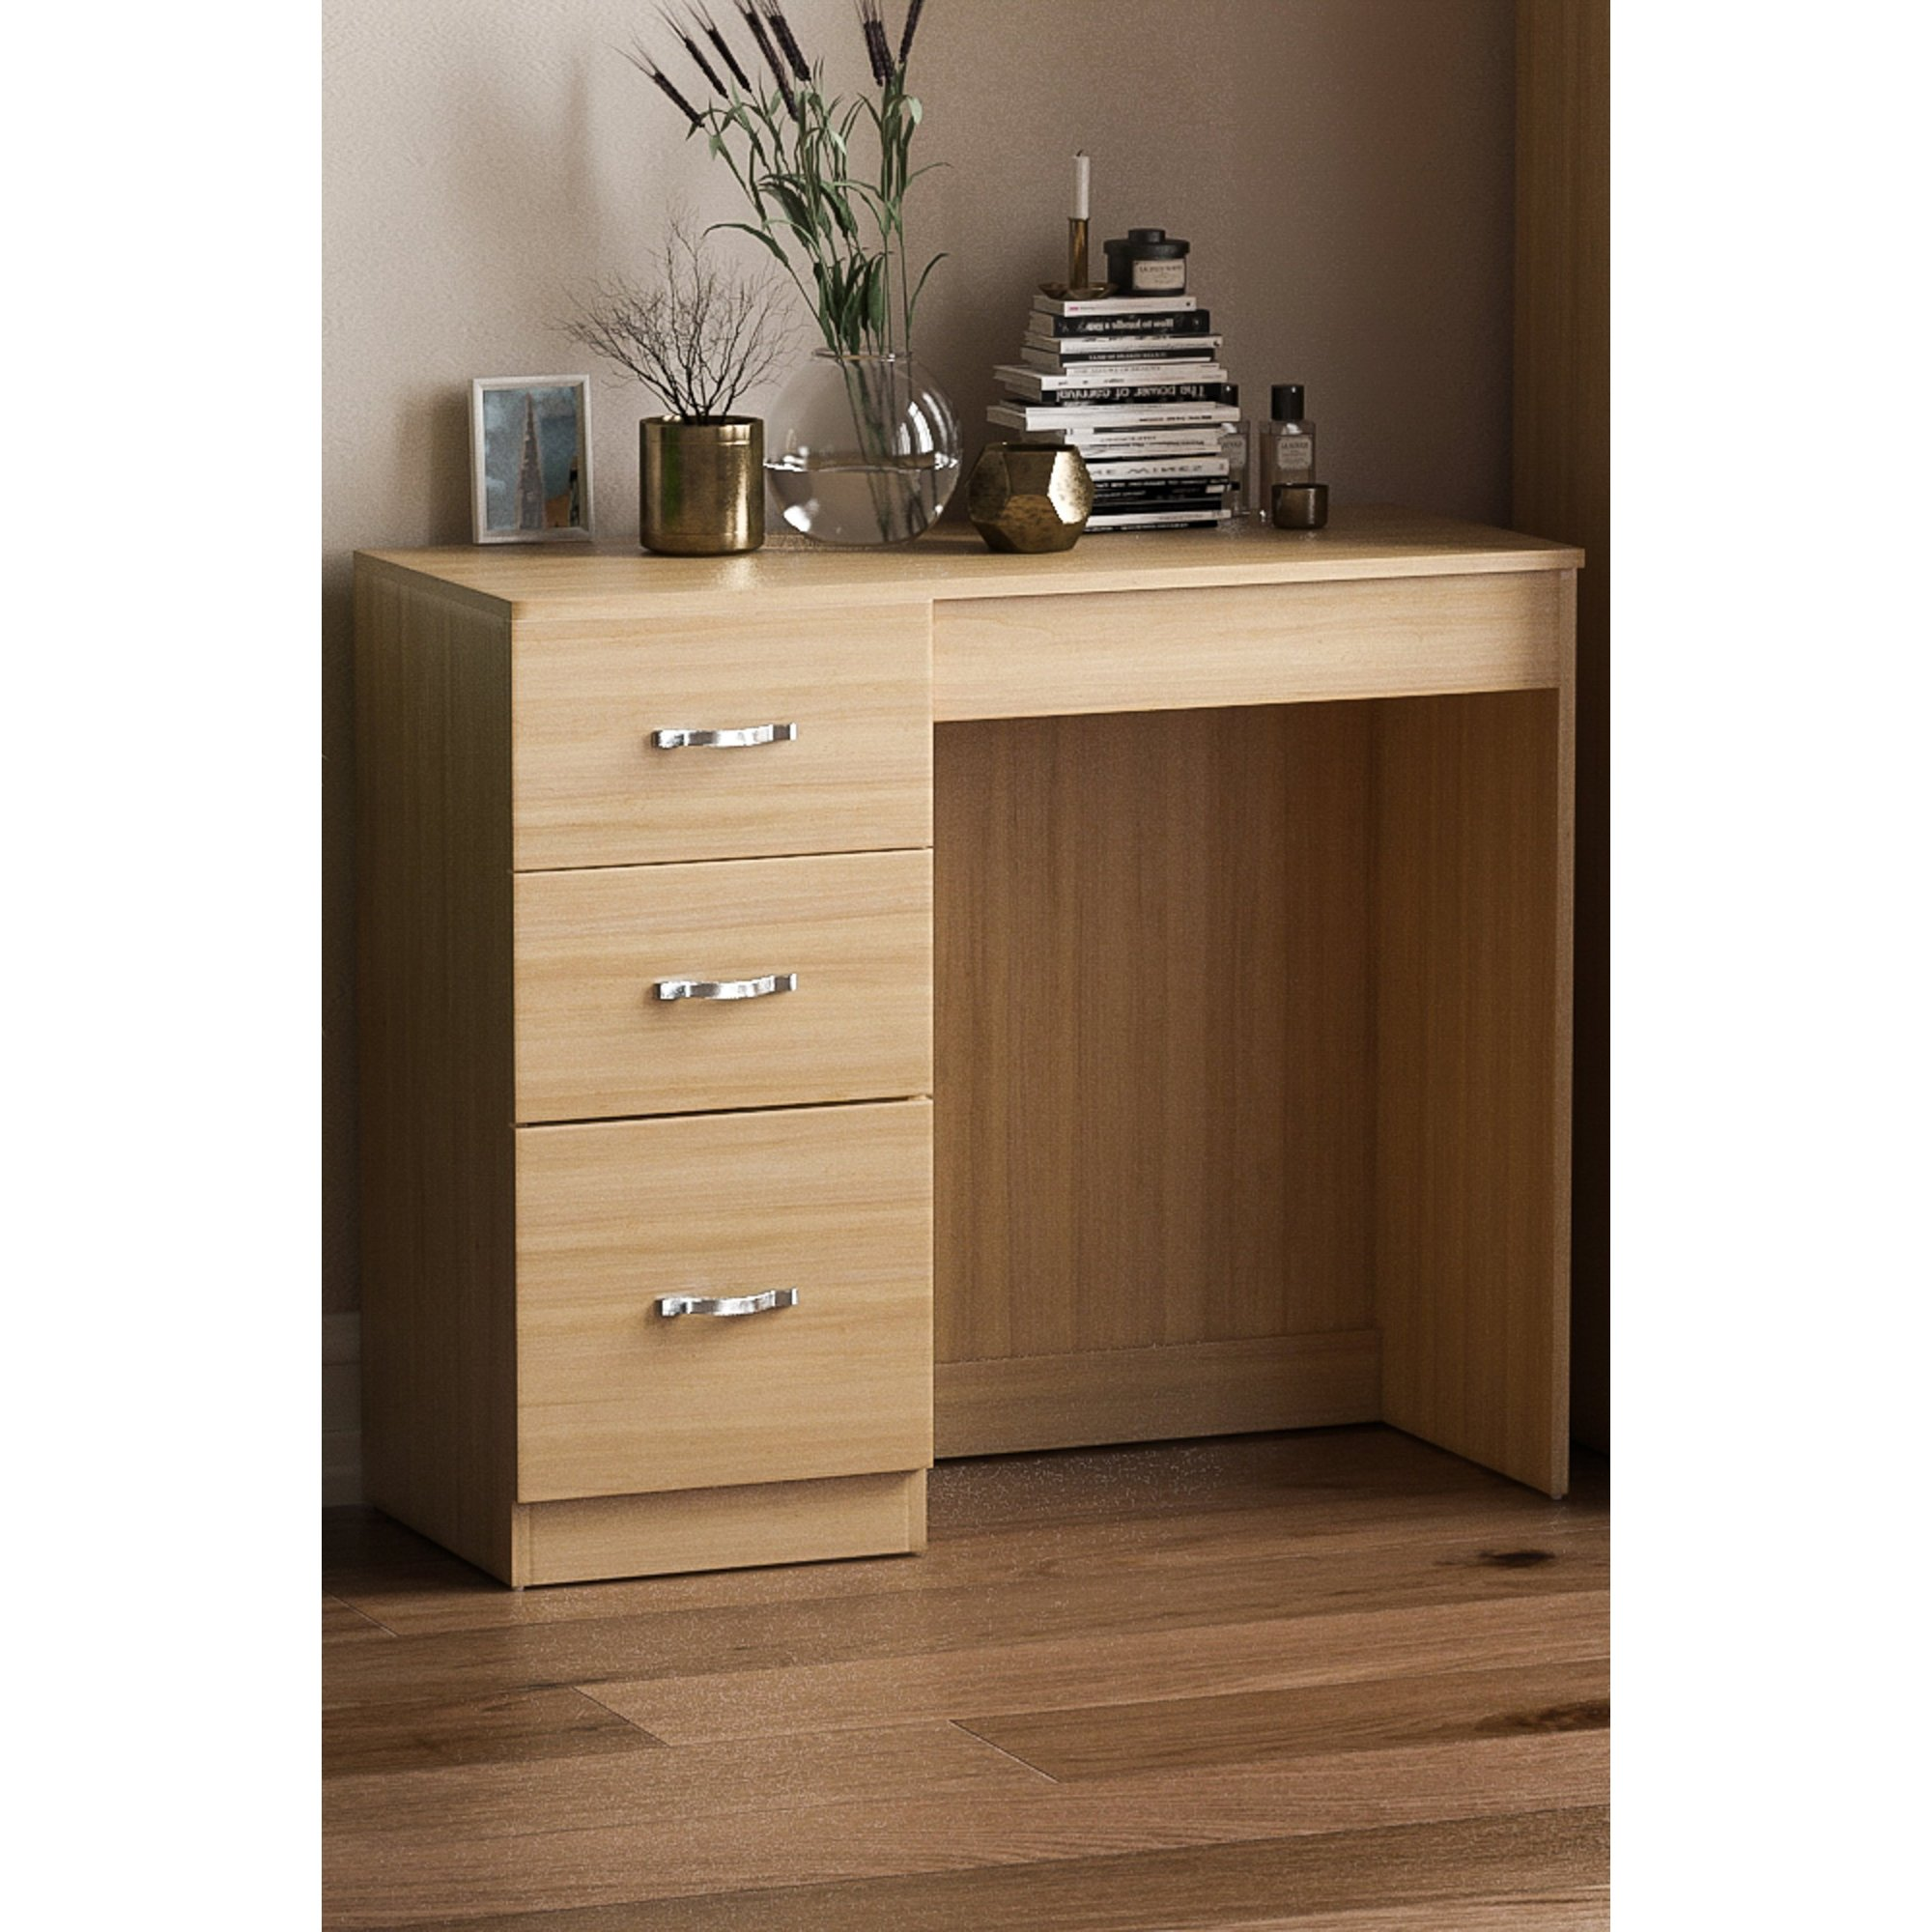 Image of 3 Drawer Dressing Table